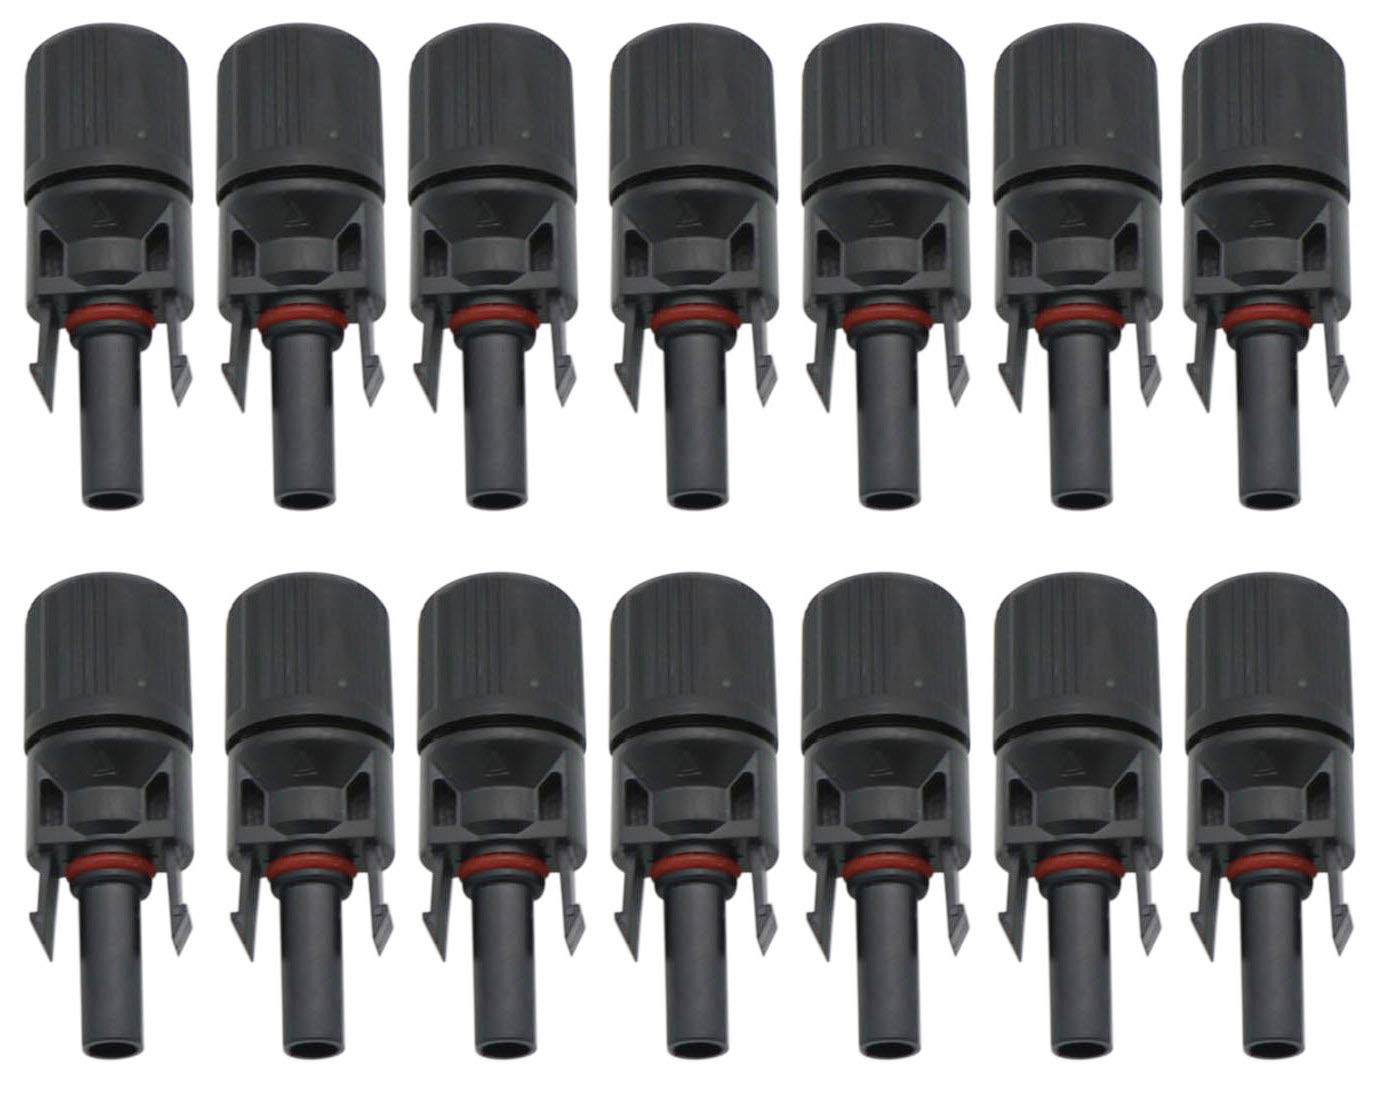 STYDDI 12 Pair MC4 Solar Panel Cable Connectors Male//Female Safety Seal Ring Waterproof IP67 Solar Panel Cable Connector with Assembly Tools